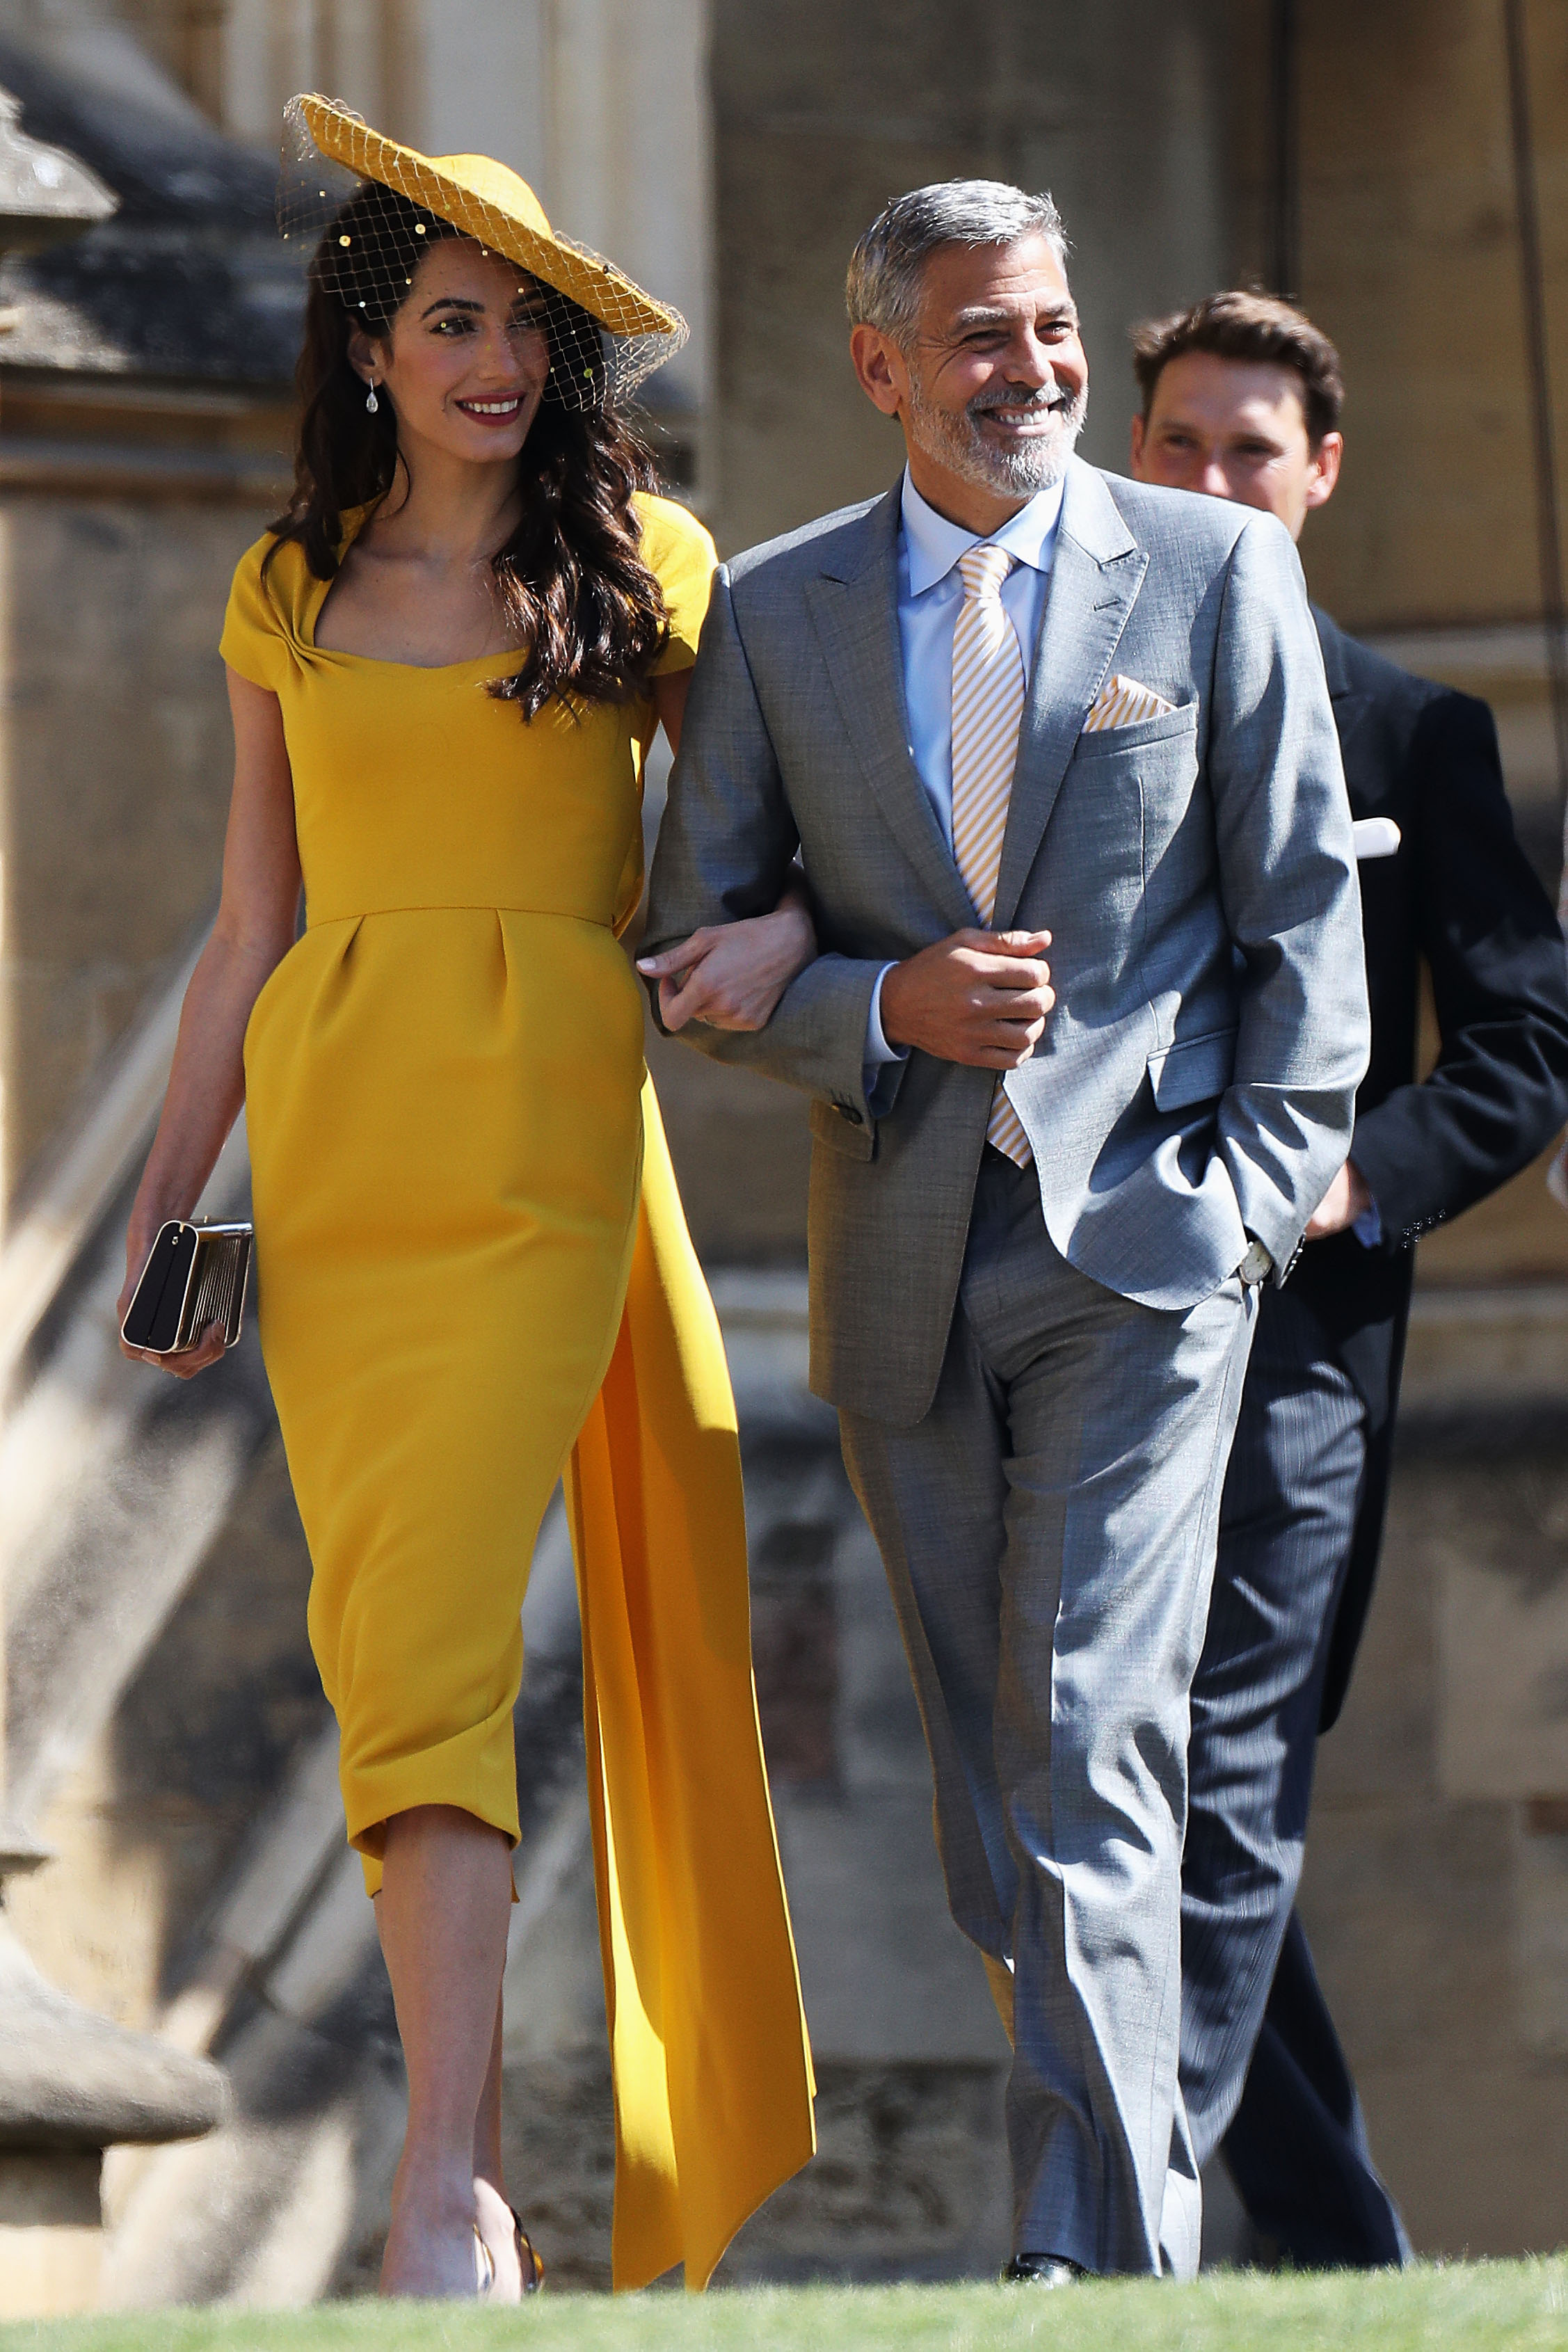 74ca73148e274 Royal Wedding Guests  See All the Stars at Harry and Meghan s Nuptials!